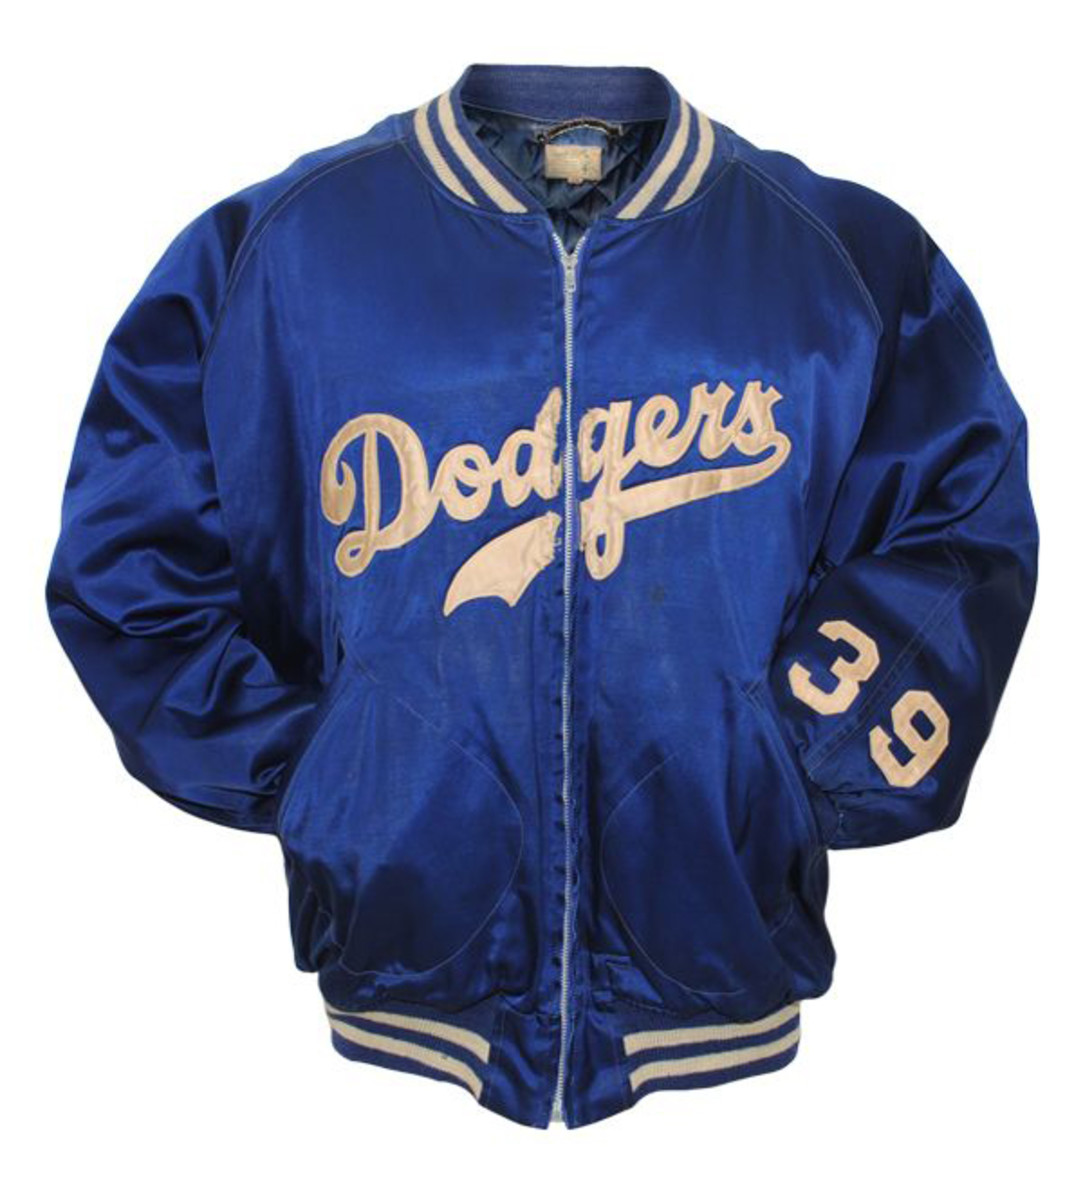 1950s Los Angeles Dodgers satin jacket owned and worn by Roy Campanella, $71,554. Grey Flannel Auctions image